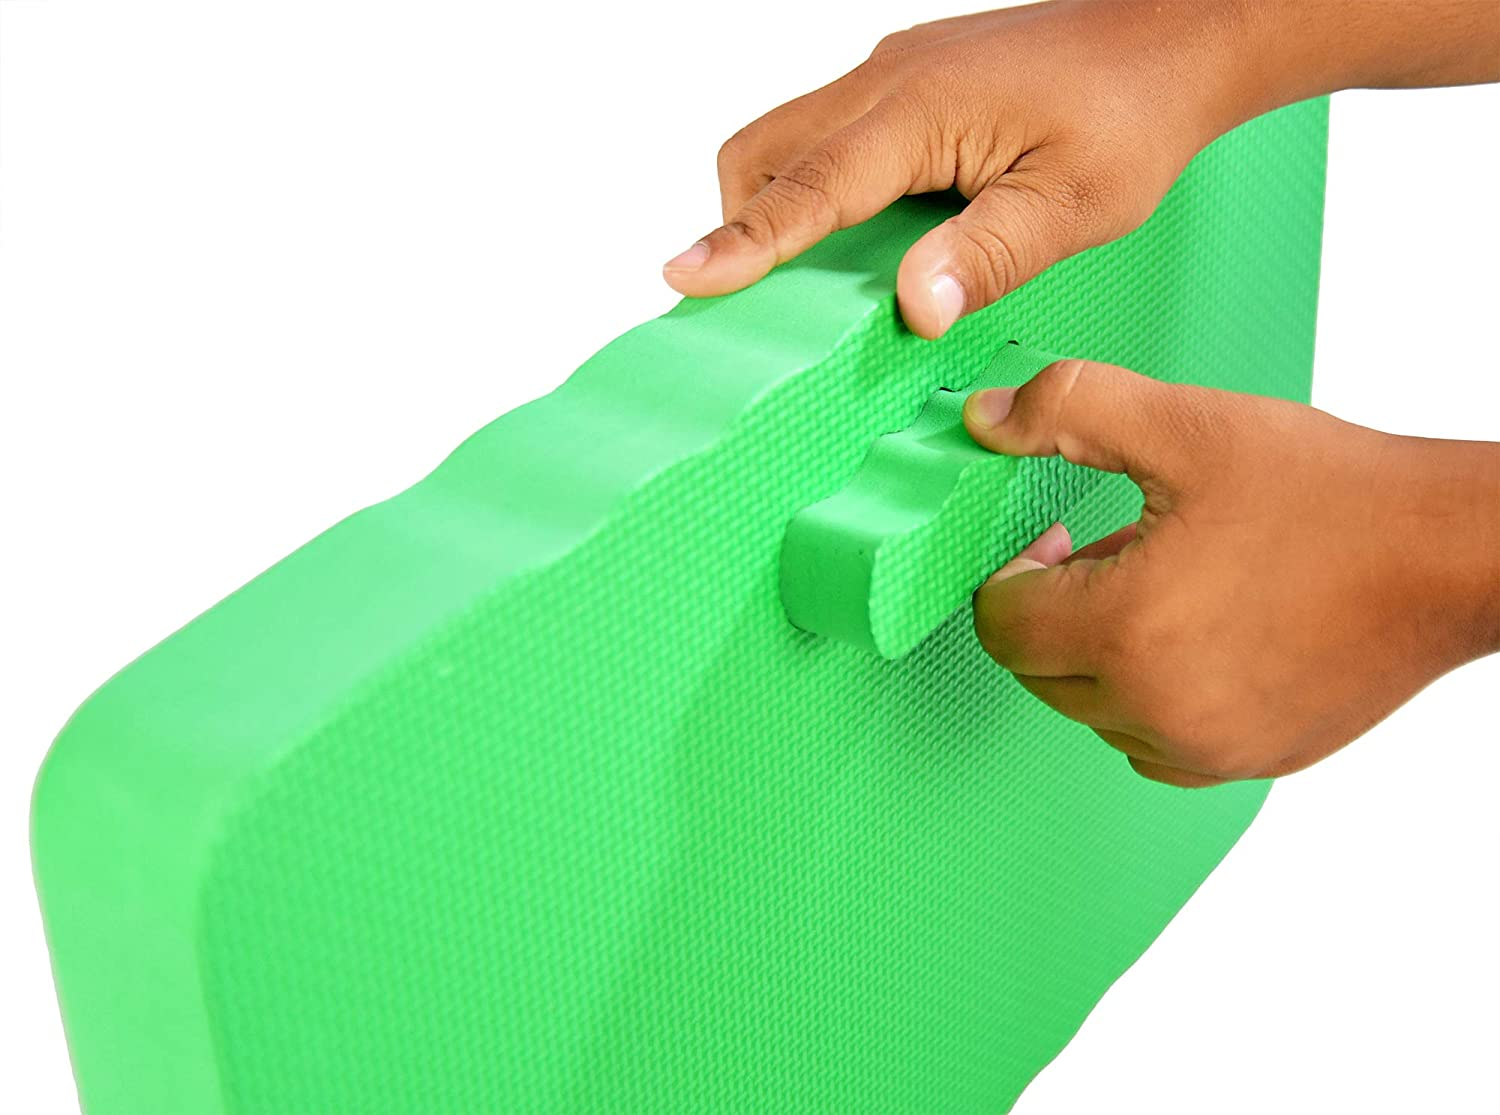 """Bathing Green Work Kneeling Cushion for Exercise 18 L x 11 W x 1 /¾/"""" H Home-X Gardening Kneeling Pad and More Foam Cushion Knee Pad for Cleaning"""